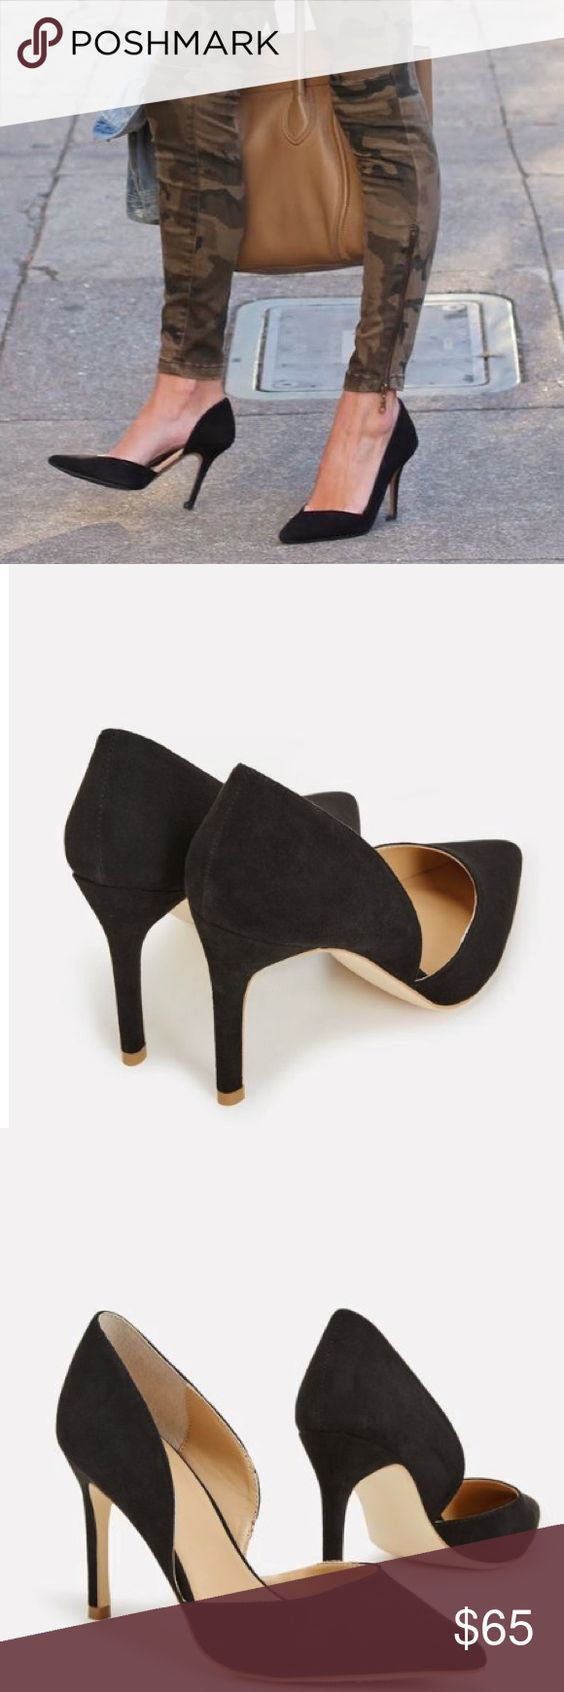 The Classy Suede Pumps Keep it classy with Latia. She's got the timeless look of a pump with the added style of a d-Orsay. You'll never get tired of this versatile faux suede heel!  NEW IN THE BOX! NO OFFERS NO TRADES PRICE IS FIRM Shoes Heels